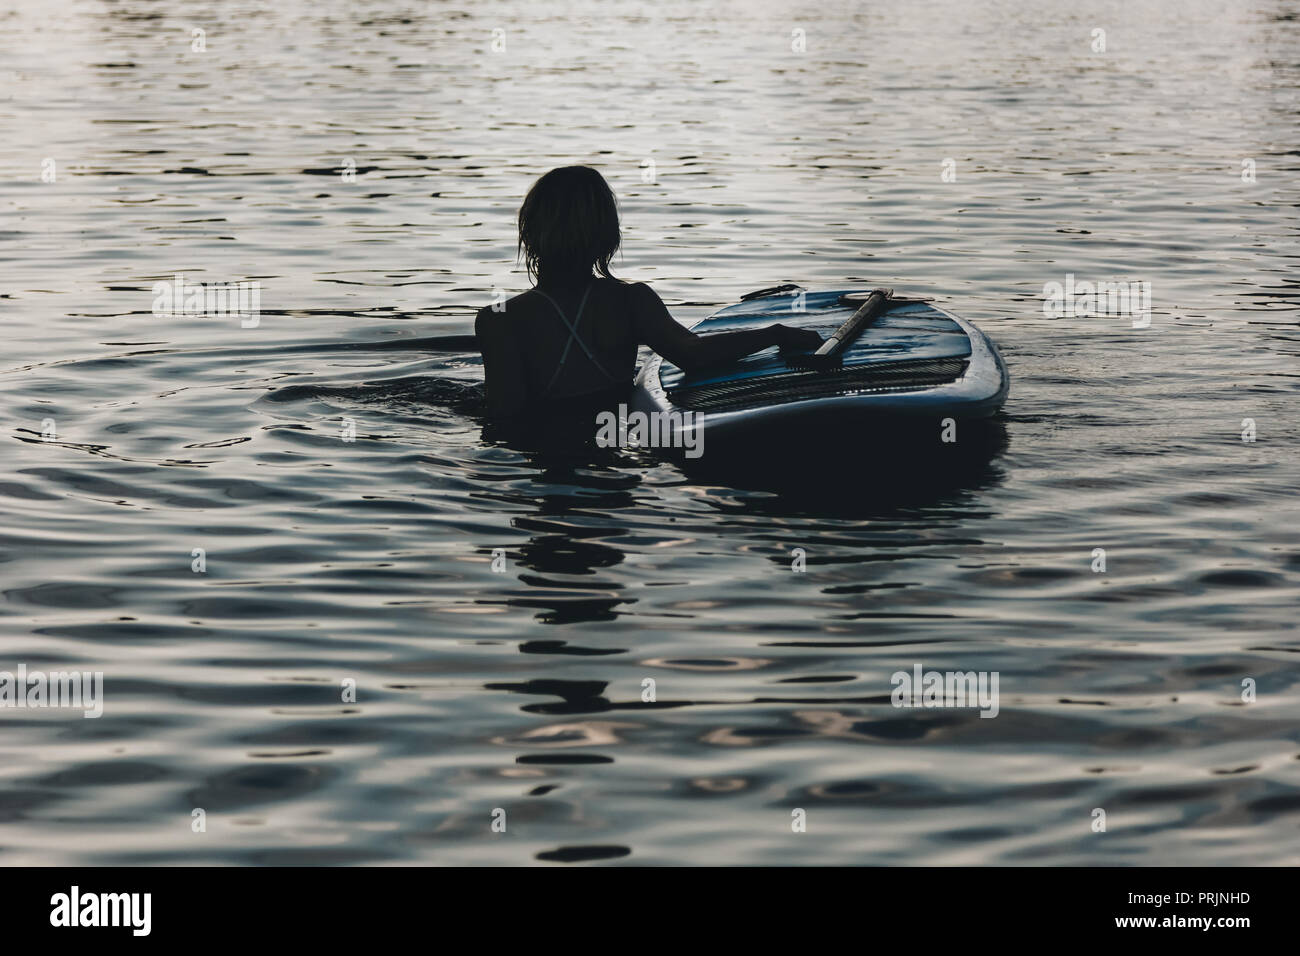 silhouette of woman swimming in water with sup board - Stock Image